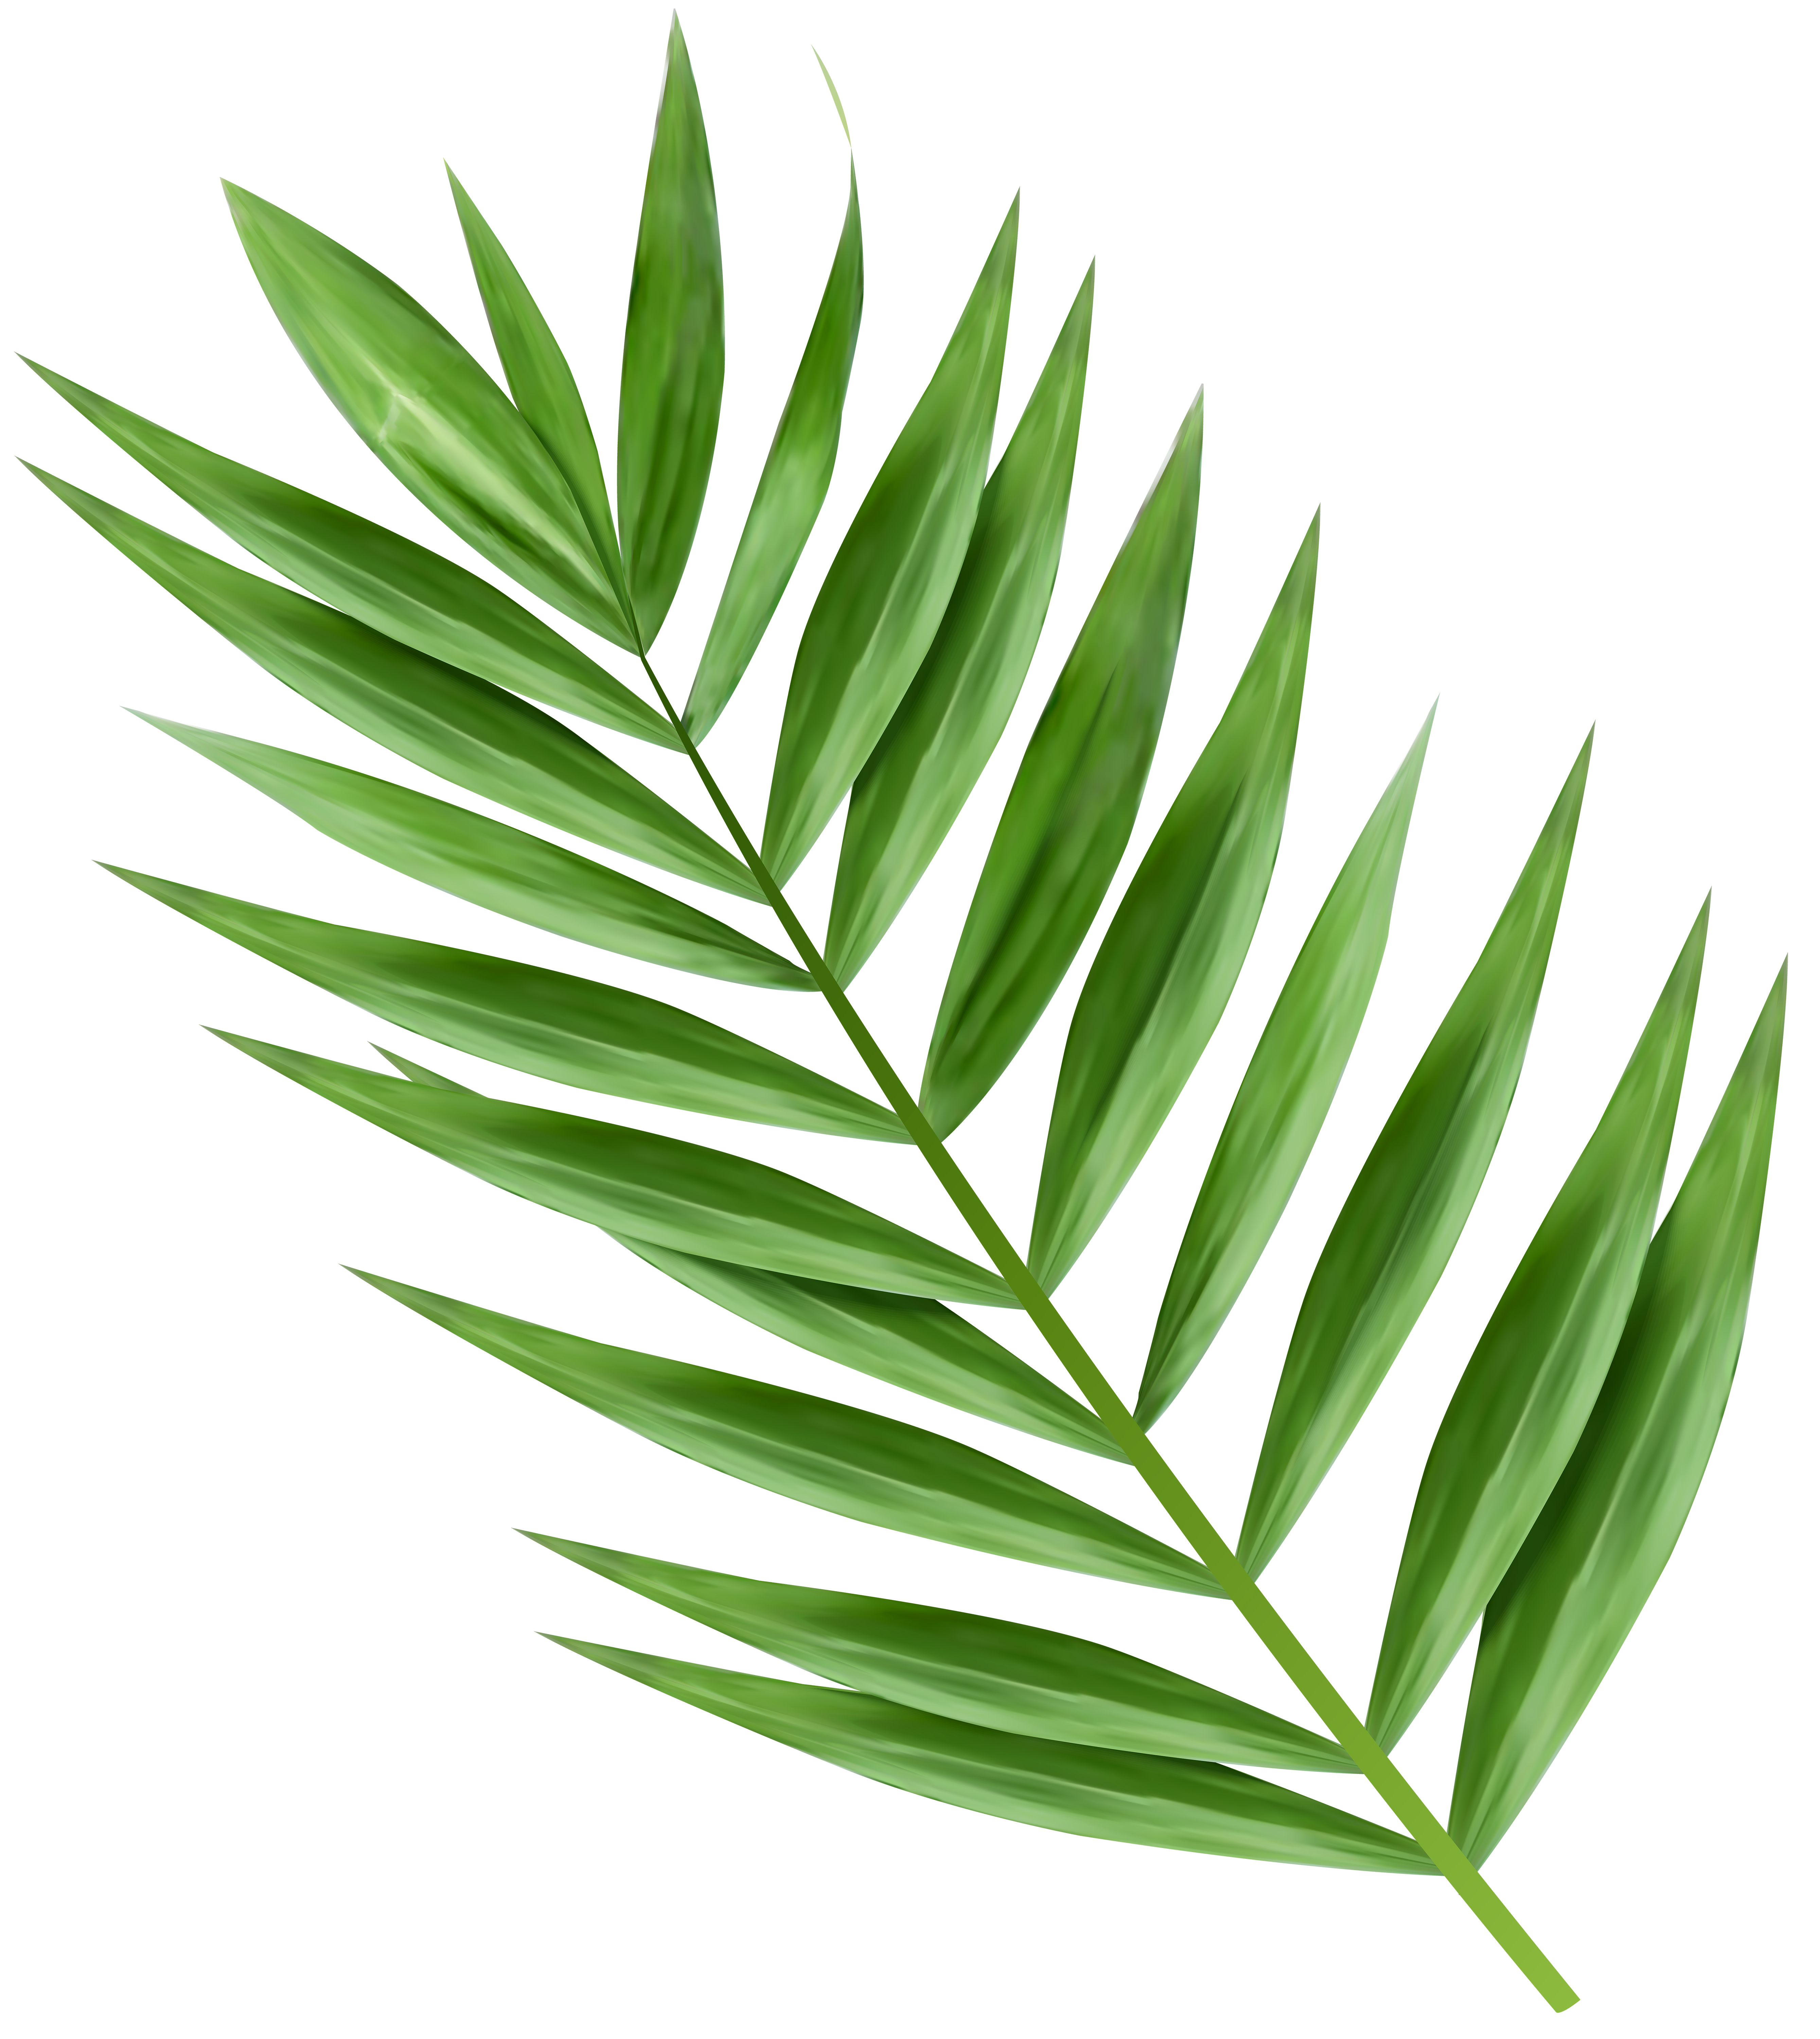 Transparent image gallery yopriceville. Palm clipart green branch